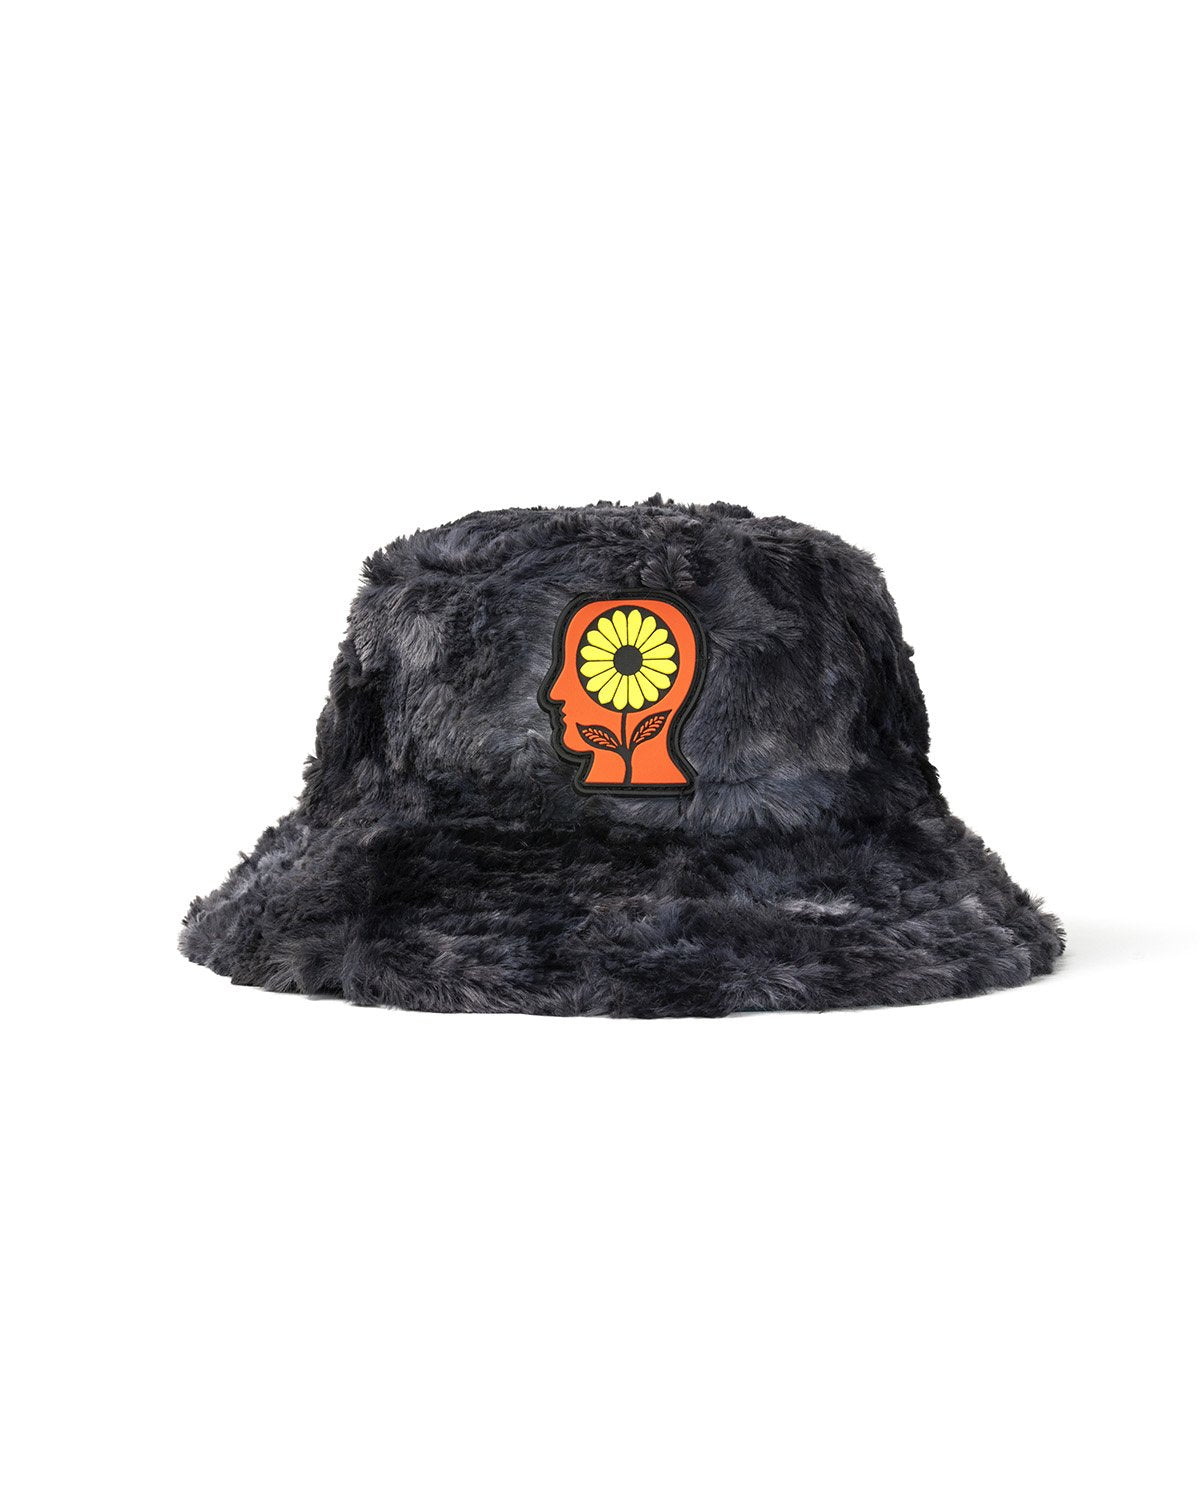 BRAINDEAD HATS REVERSIBLE SUNFLOWER BUCKET HAT - CHARCOAL